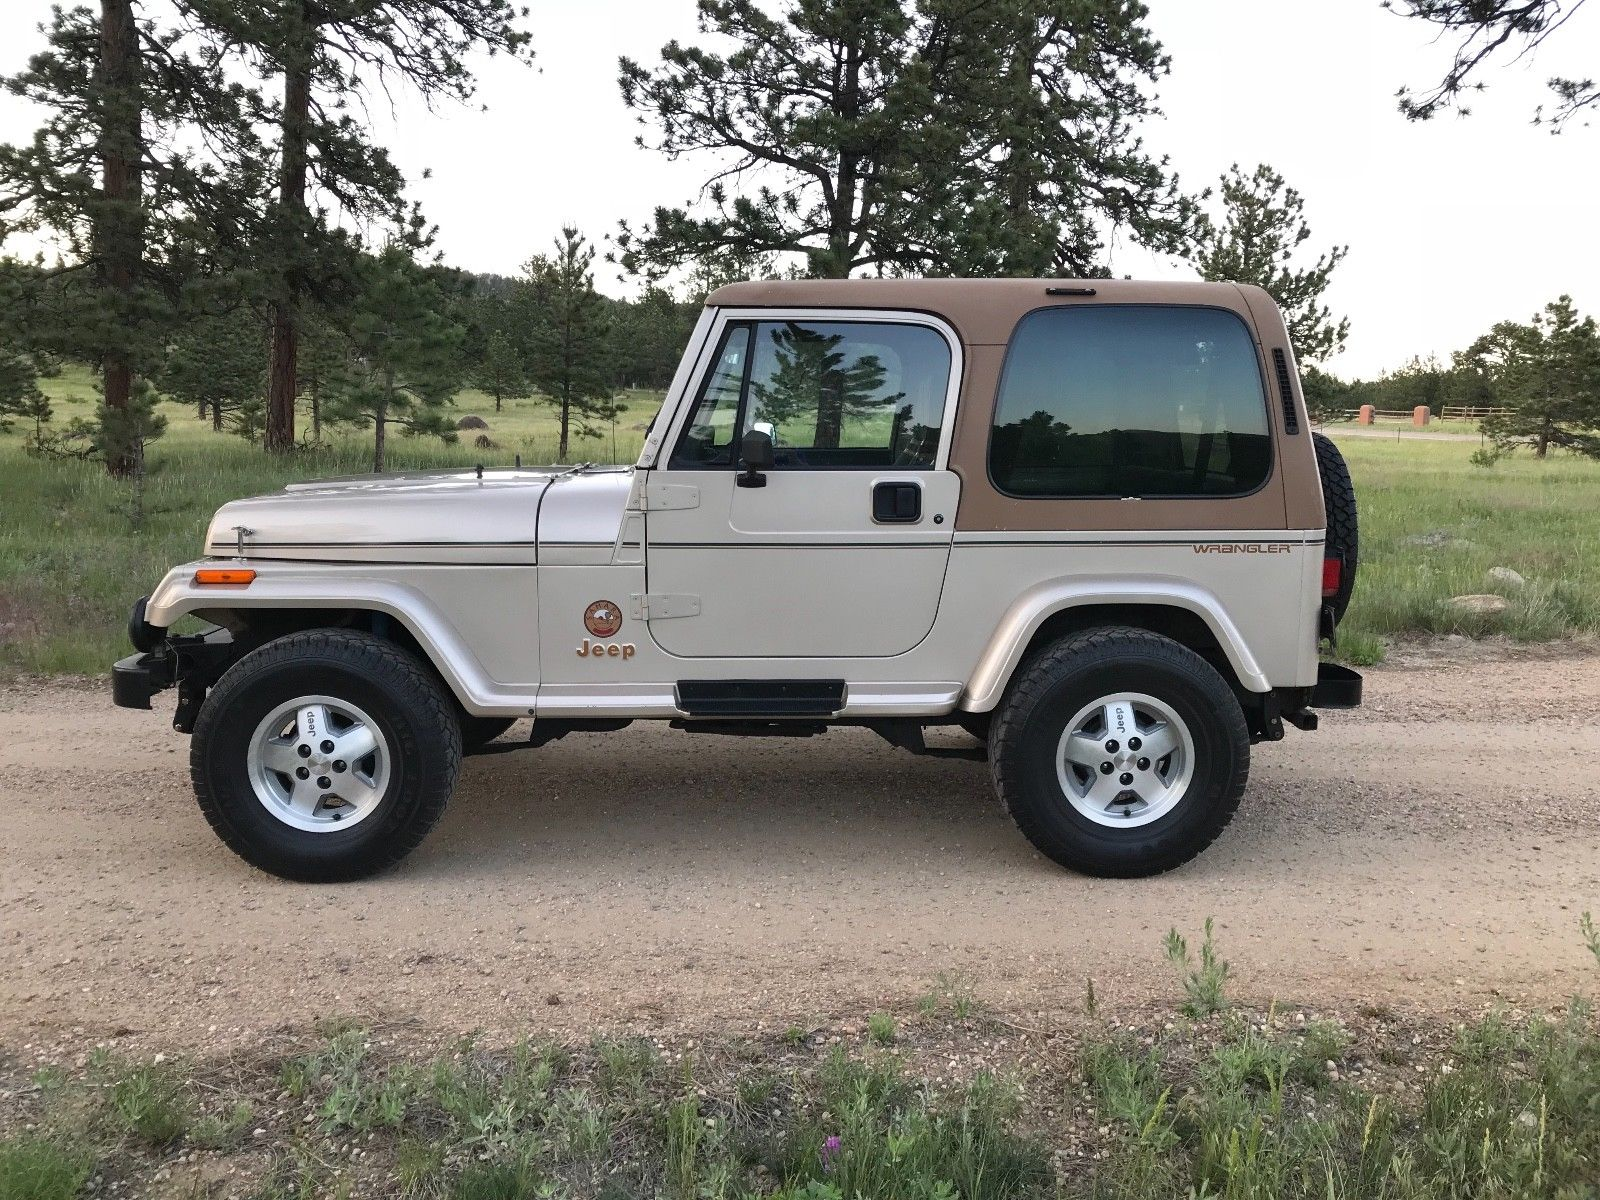 hight resolution of jeep wrangler yj awesome 1993 jeep wrangler sahara 1993 jeep wrangler yj sahara 63k